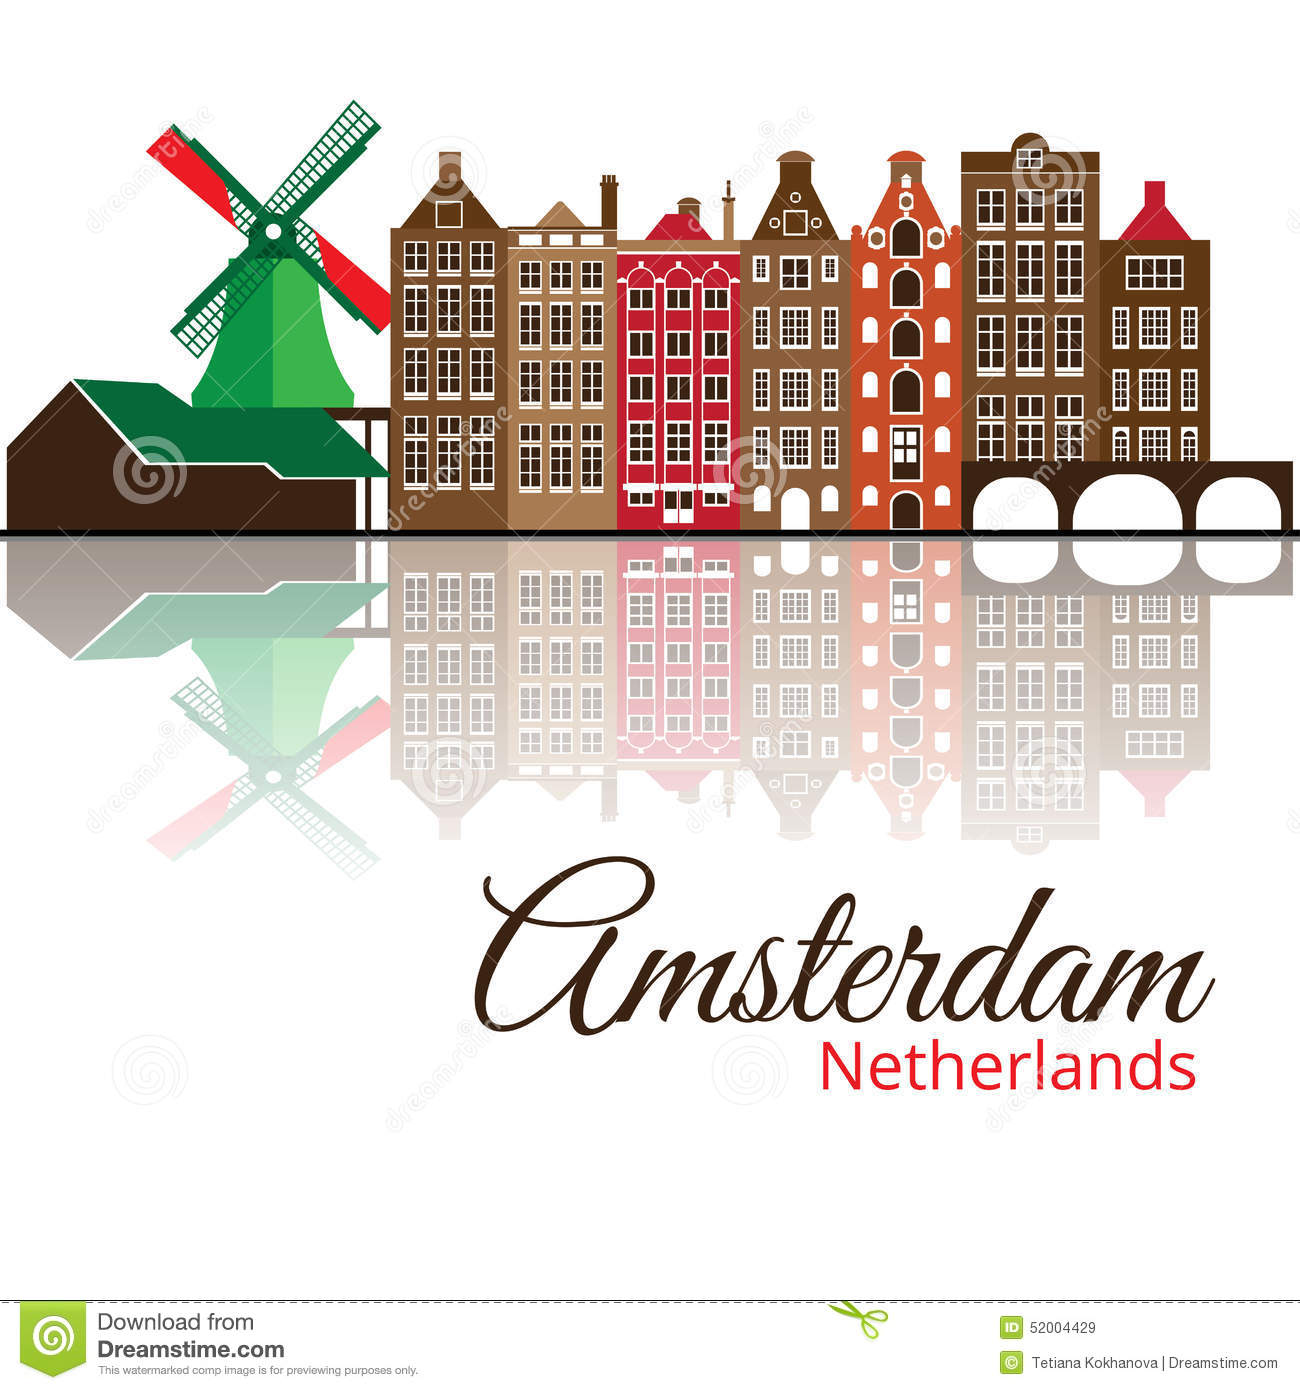 Colorized Silhouette Of Amsterdam. City Skyline. Stock Vector.